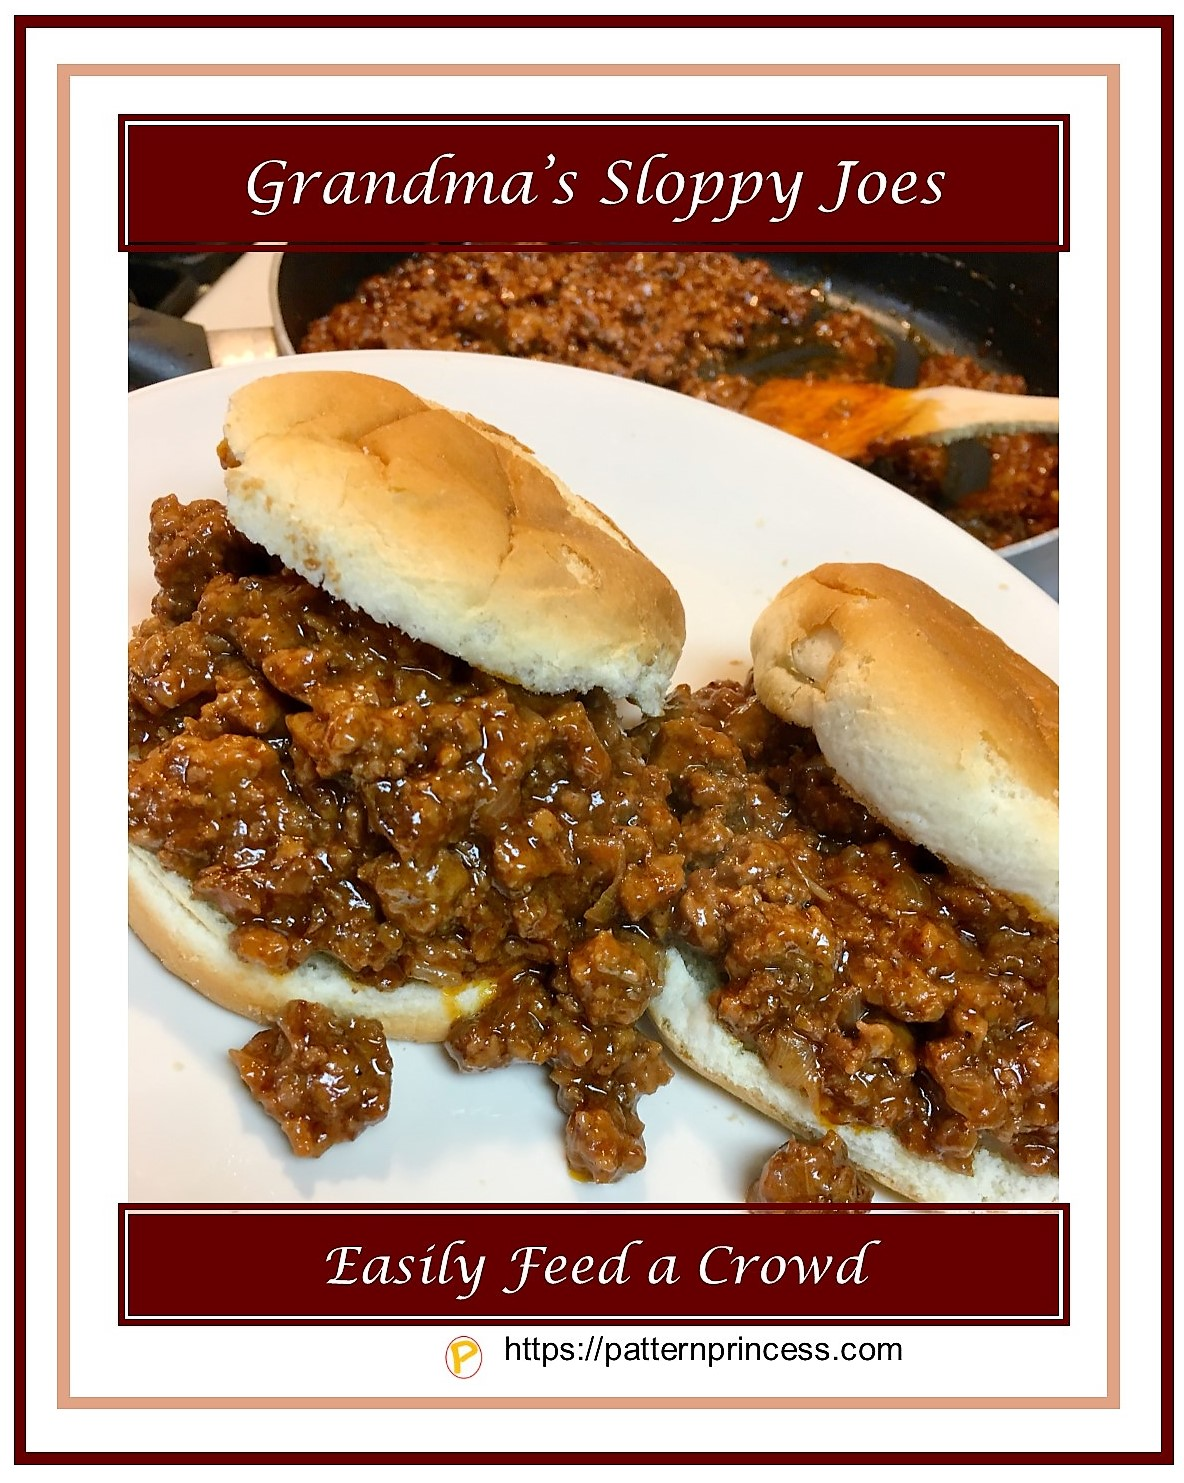 Grandma's Sloppy Joes 1